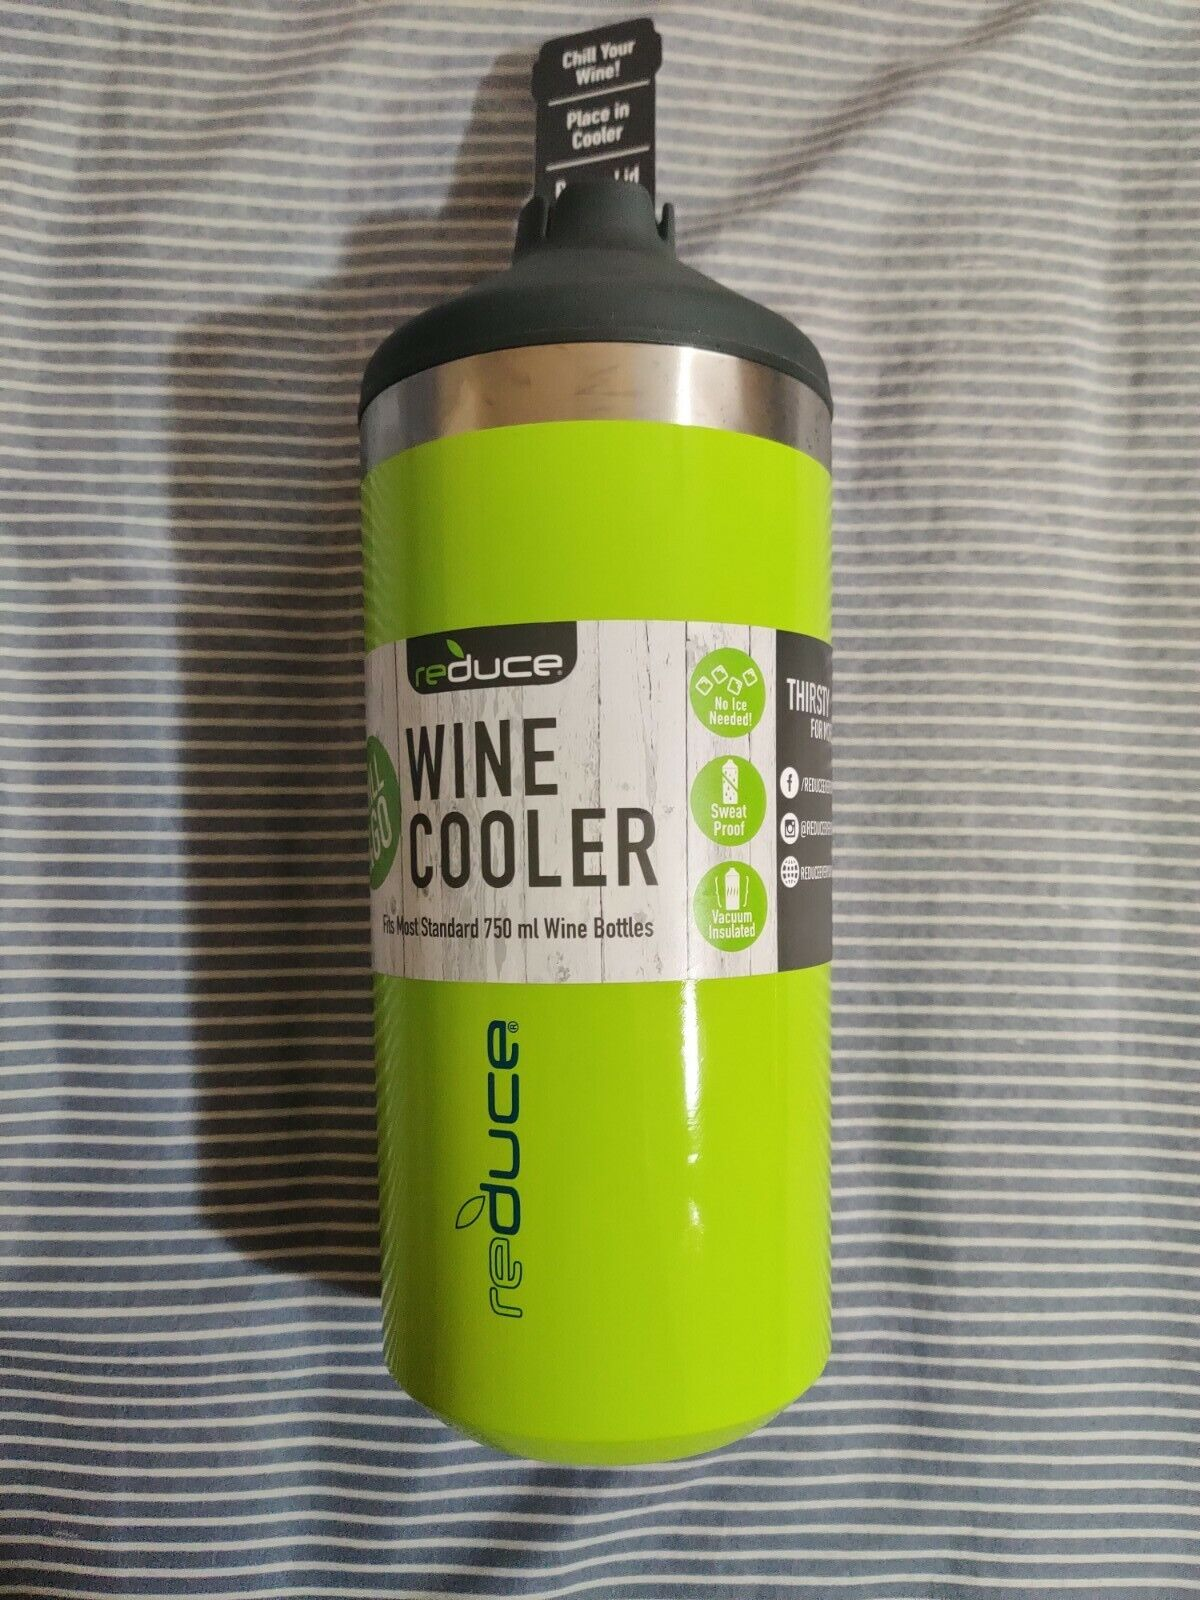 REDUCE WINE COOLER CHILL & GO VACUUM INSULATE FOR STANDARD 7